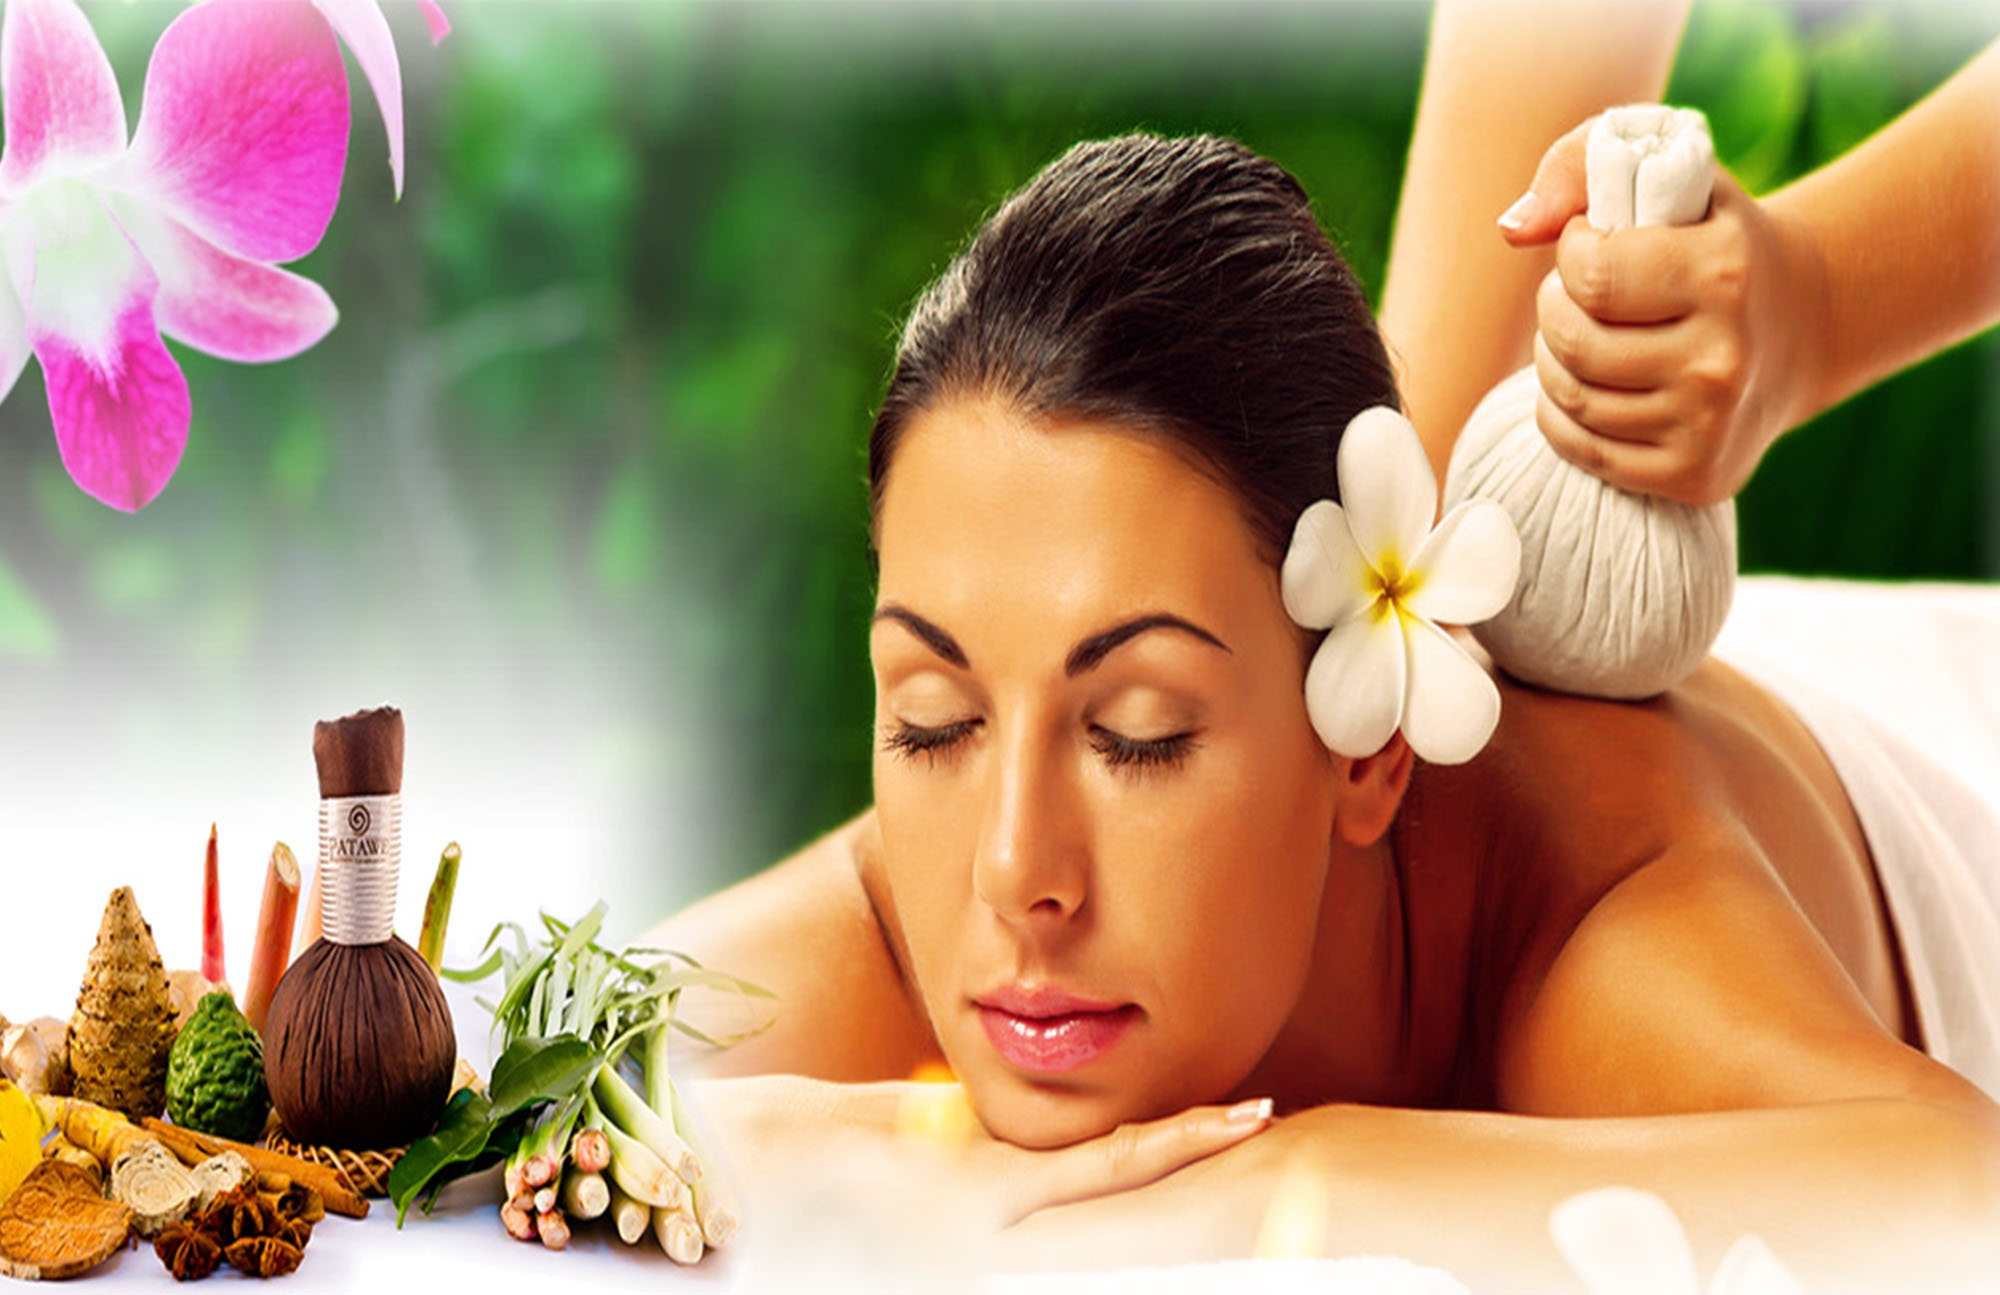 Body To Body Massage Service In Delhi By Female To Malenuru Massage In Delhisensual Massage In Delhihappy Ending Body To Body Massage Service In South